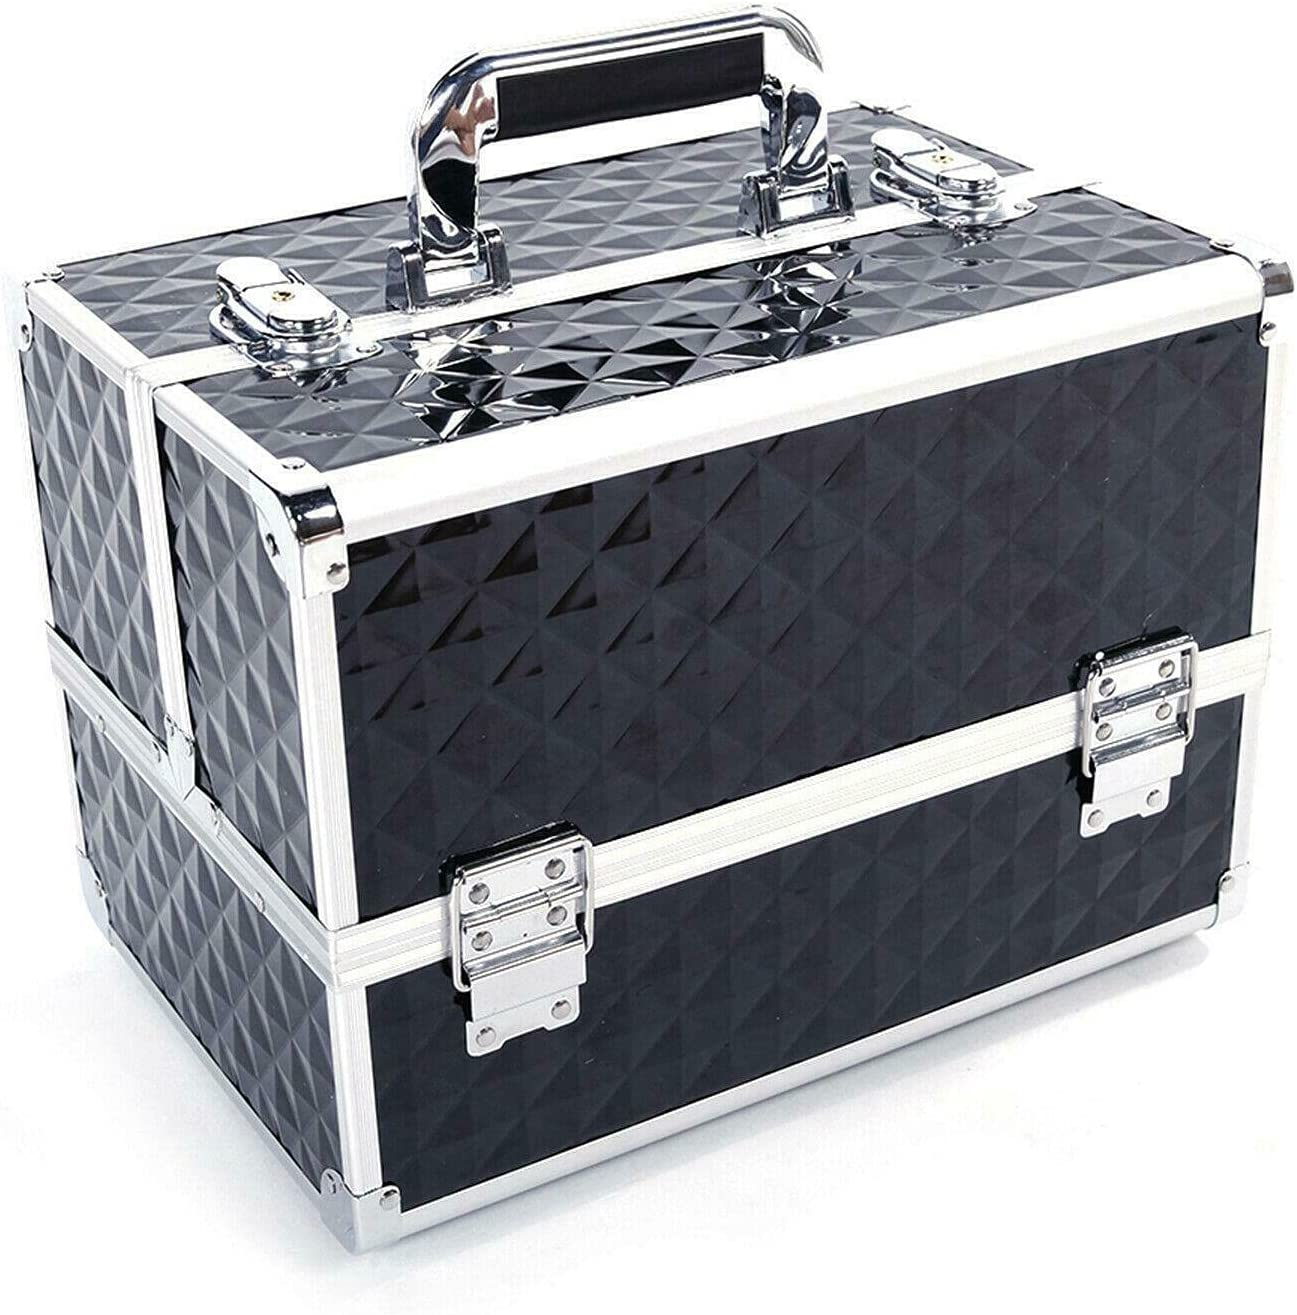 Portable Makeup online shopping Case Bag Cosmetic Storage Ranking TOP13 Jewelry Lock Organizer